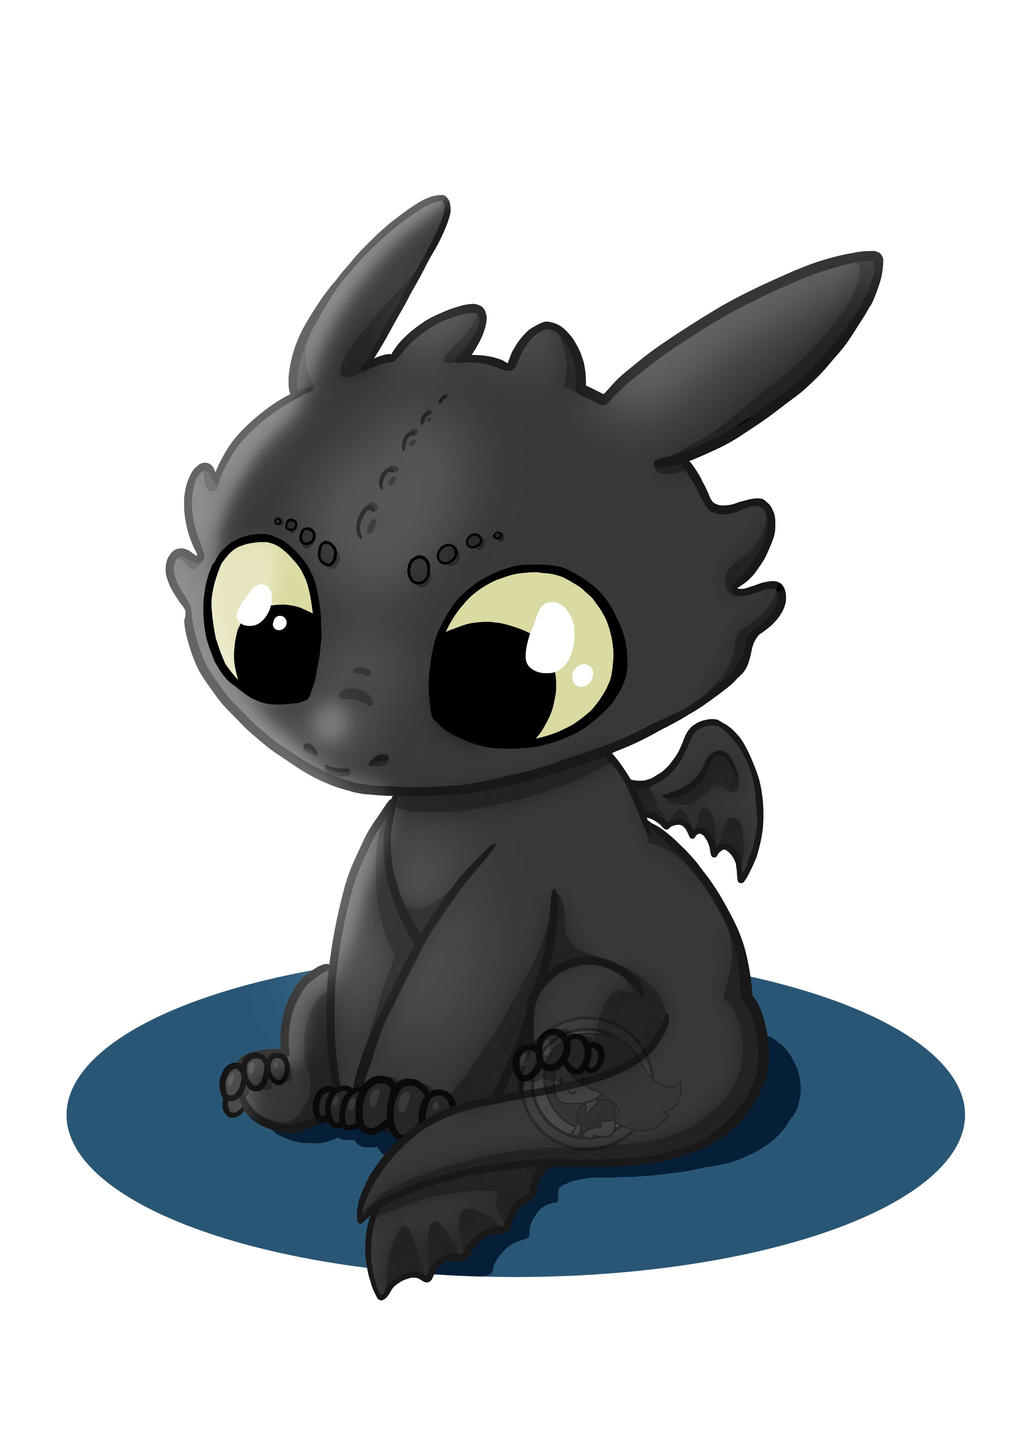 Krokmou / Toothless by Morgane-chouvier on DeviantArt - photo#32